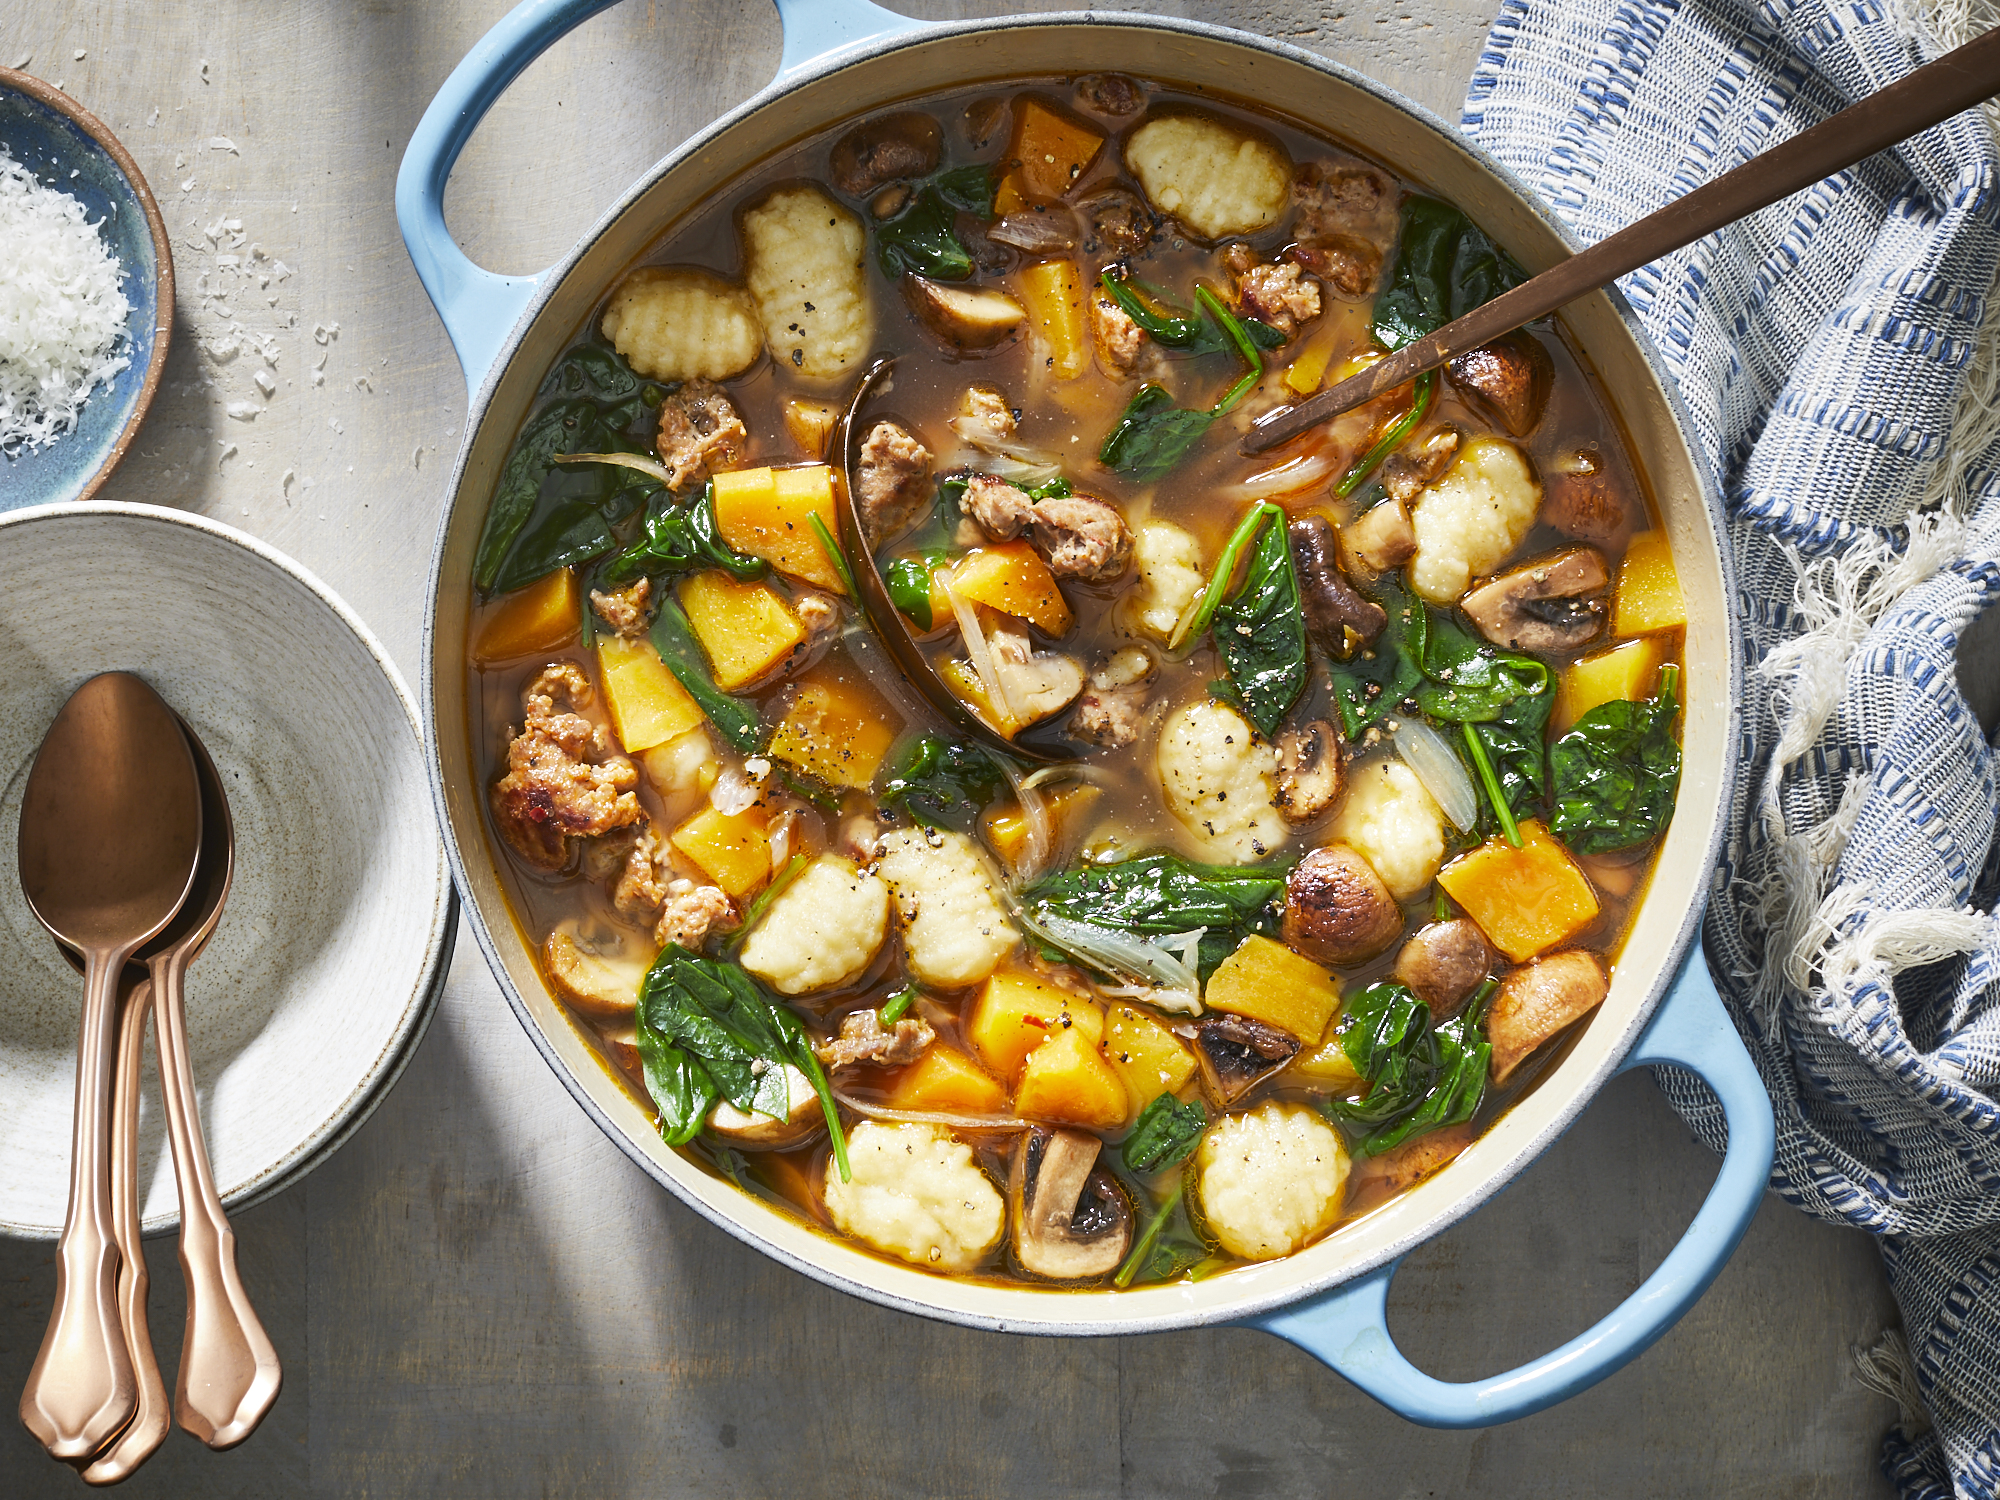 Savory Sausage, Veggie, and Gnocchi Soup